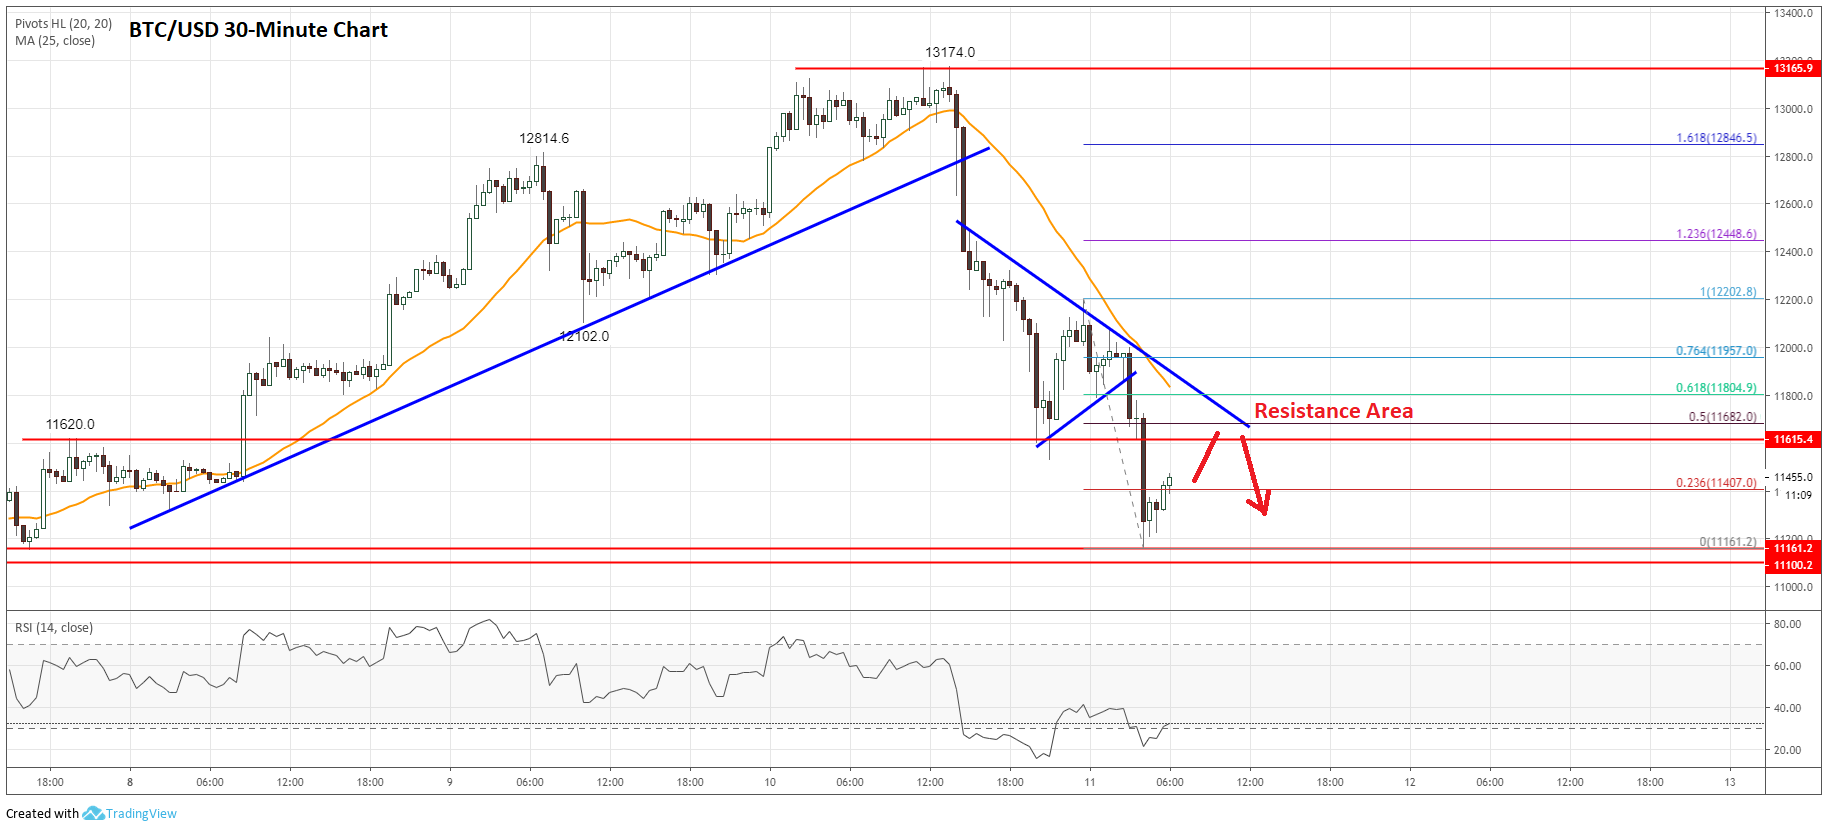 Bitcoin Price Analysis: BTC/USD Nosedives, Turns Sell On Rallies